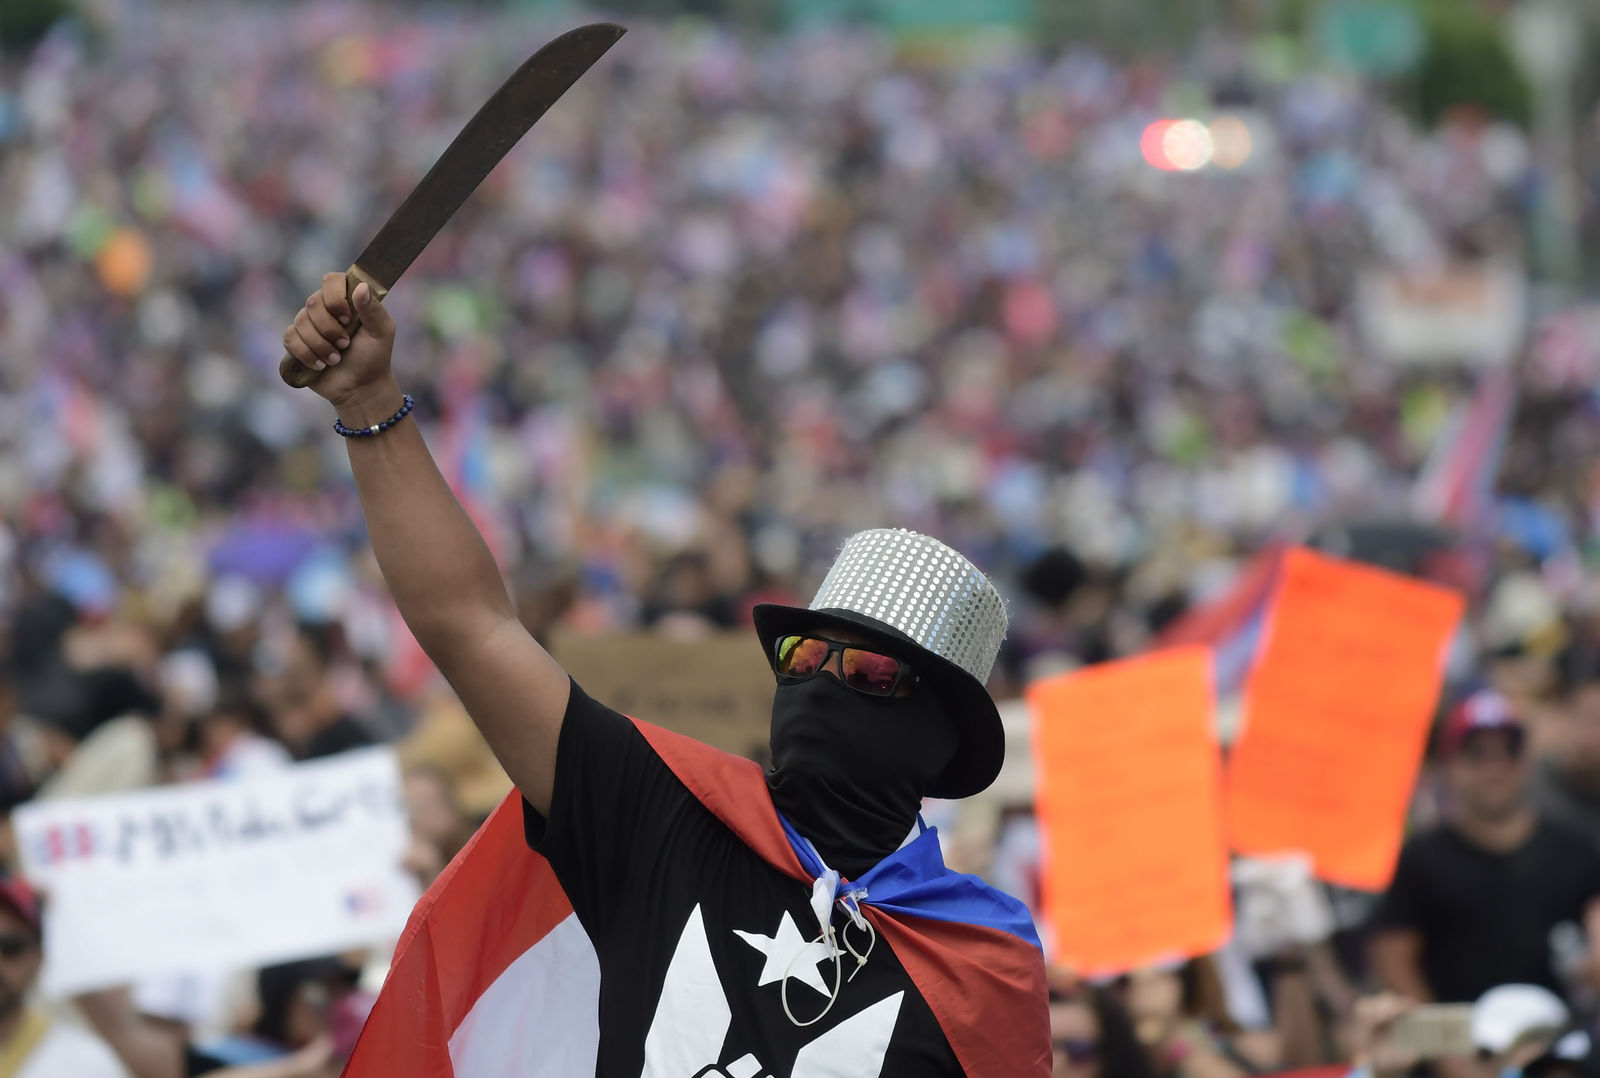 A demonstrator brandishes a machete during a march on Las Americas highway to demand the resignation of governor Ricardo Rossello, in San Juan, Puerto Rico, Monday, July 22, 2019.{ } (AP Photo/Carlos Giusti)